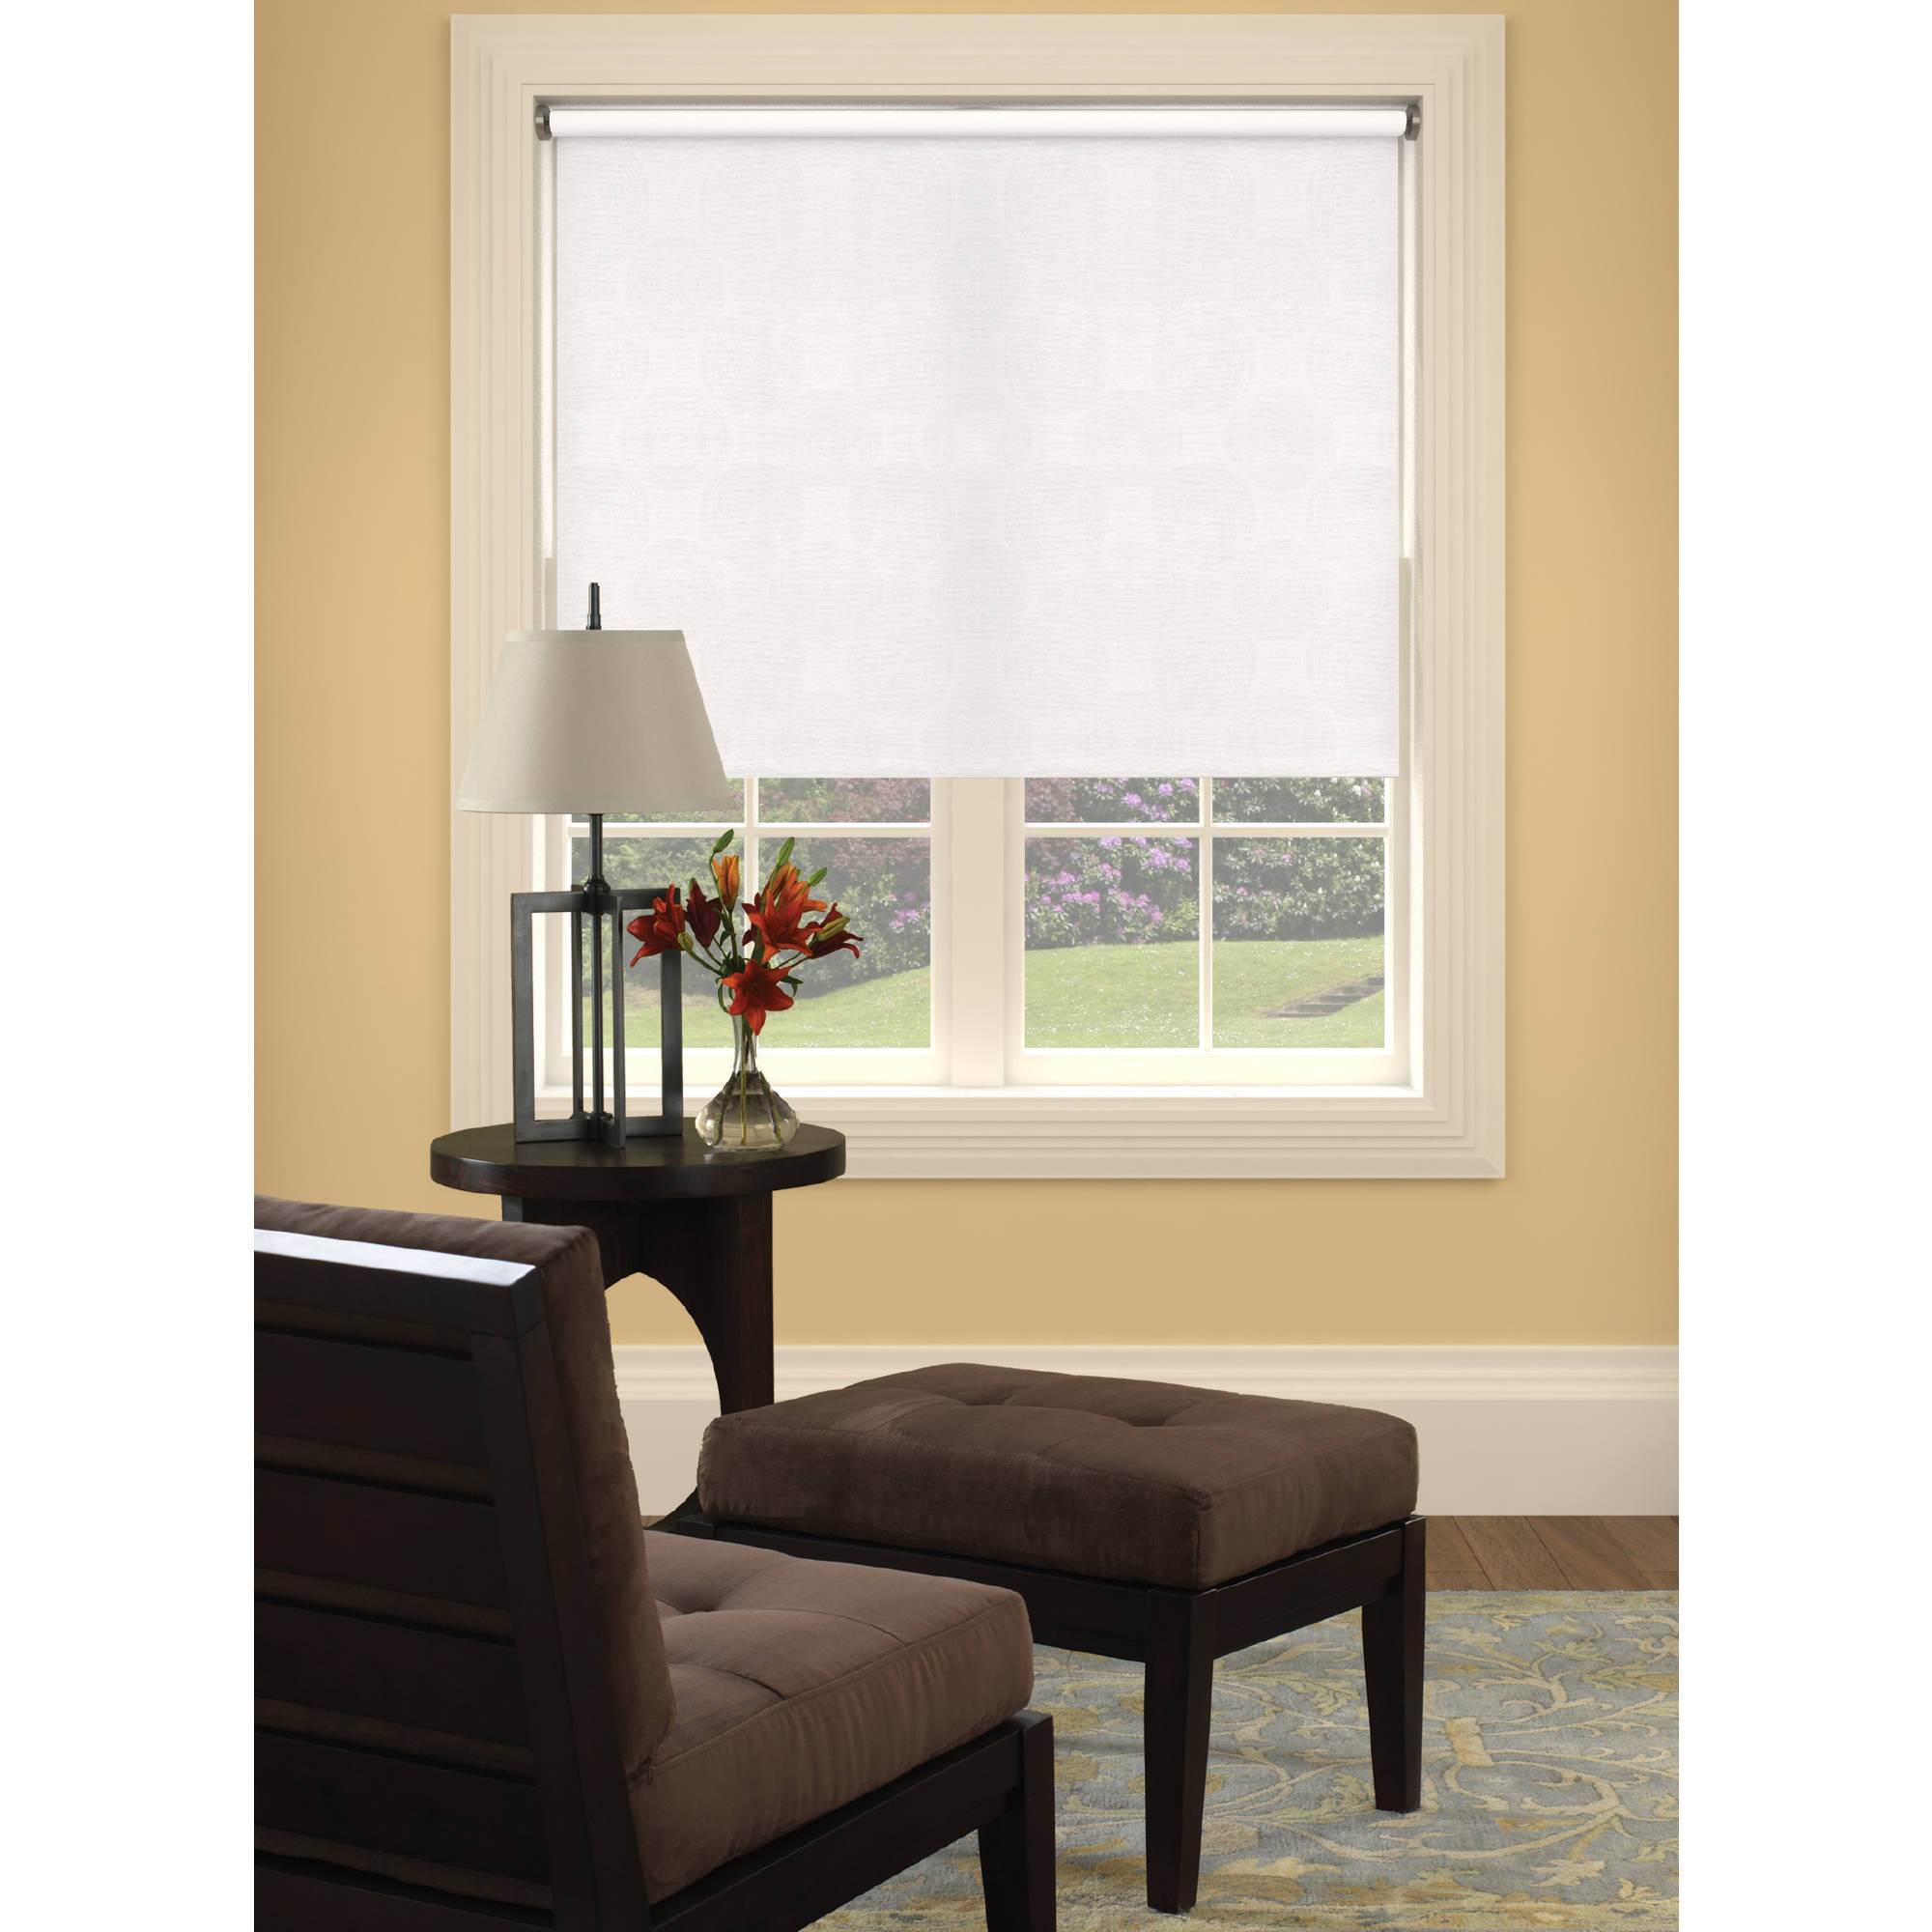 Bali Size-at-Home Vinyl Roller Shades, Available in Multiple Sizes and Colors